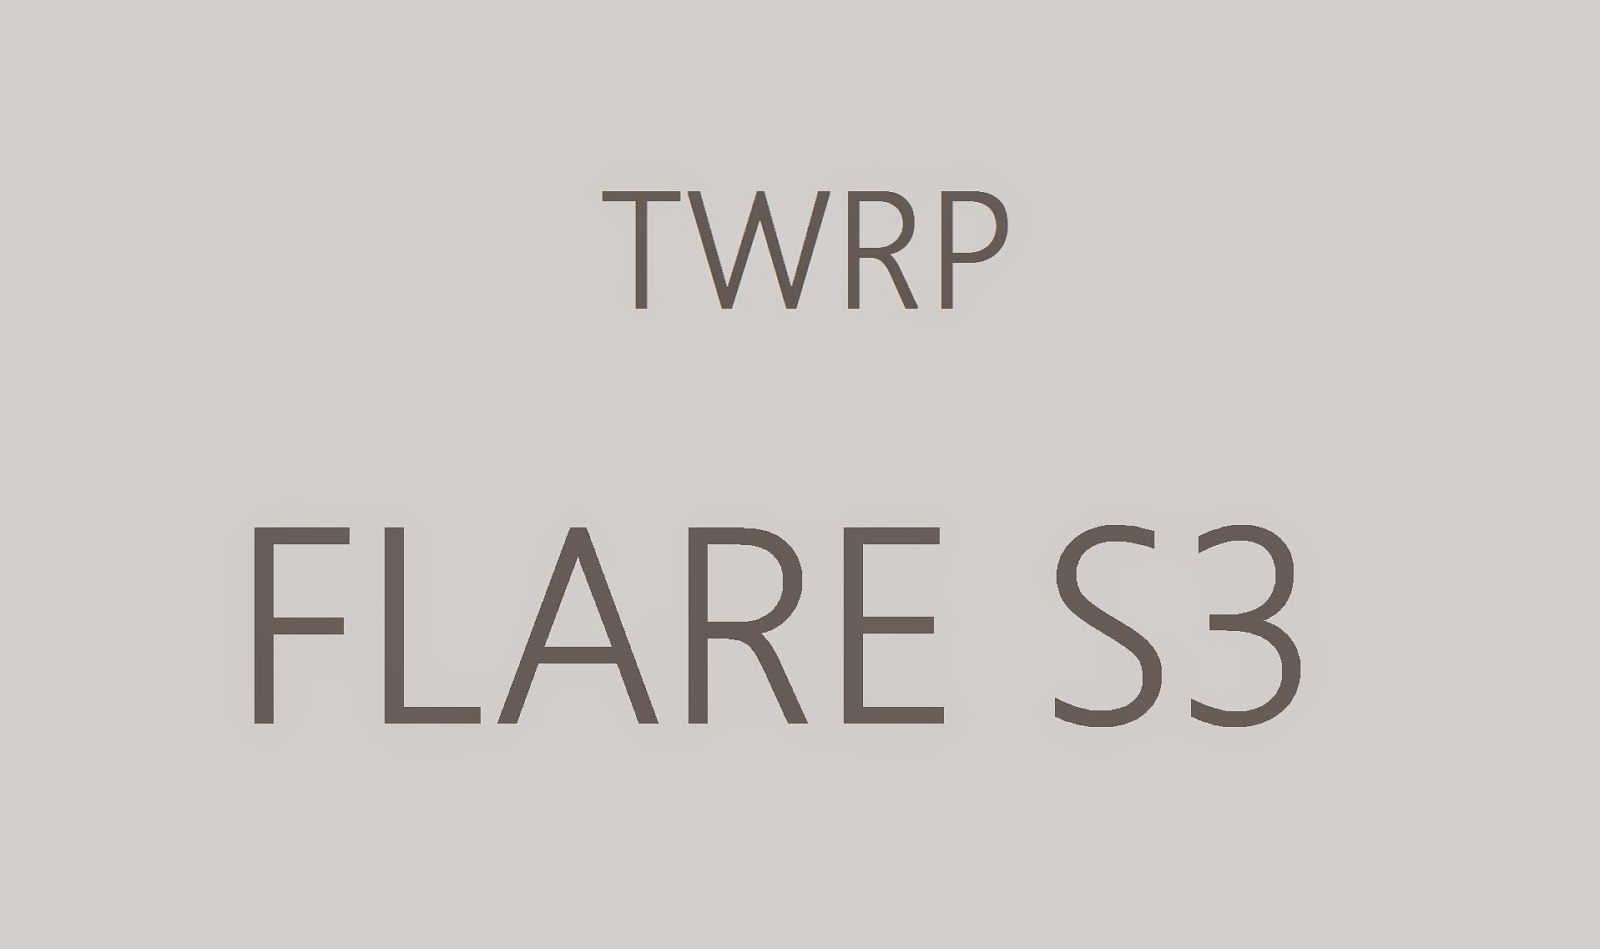 Cherry Mobile Flare S3 TWRP